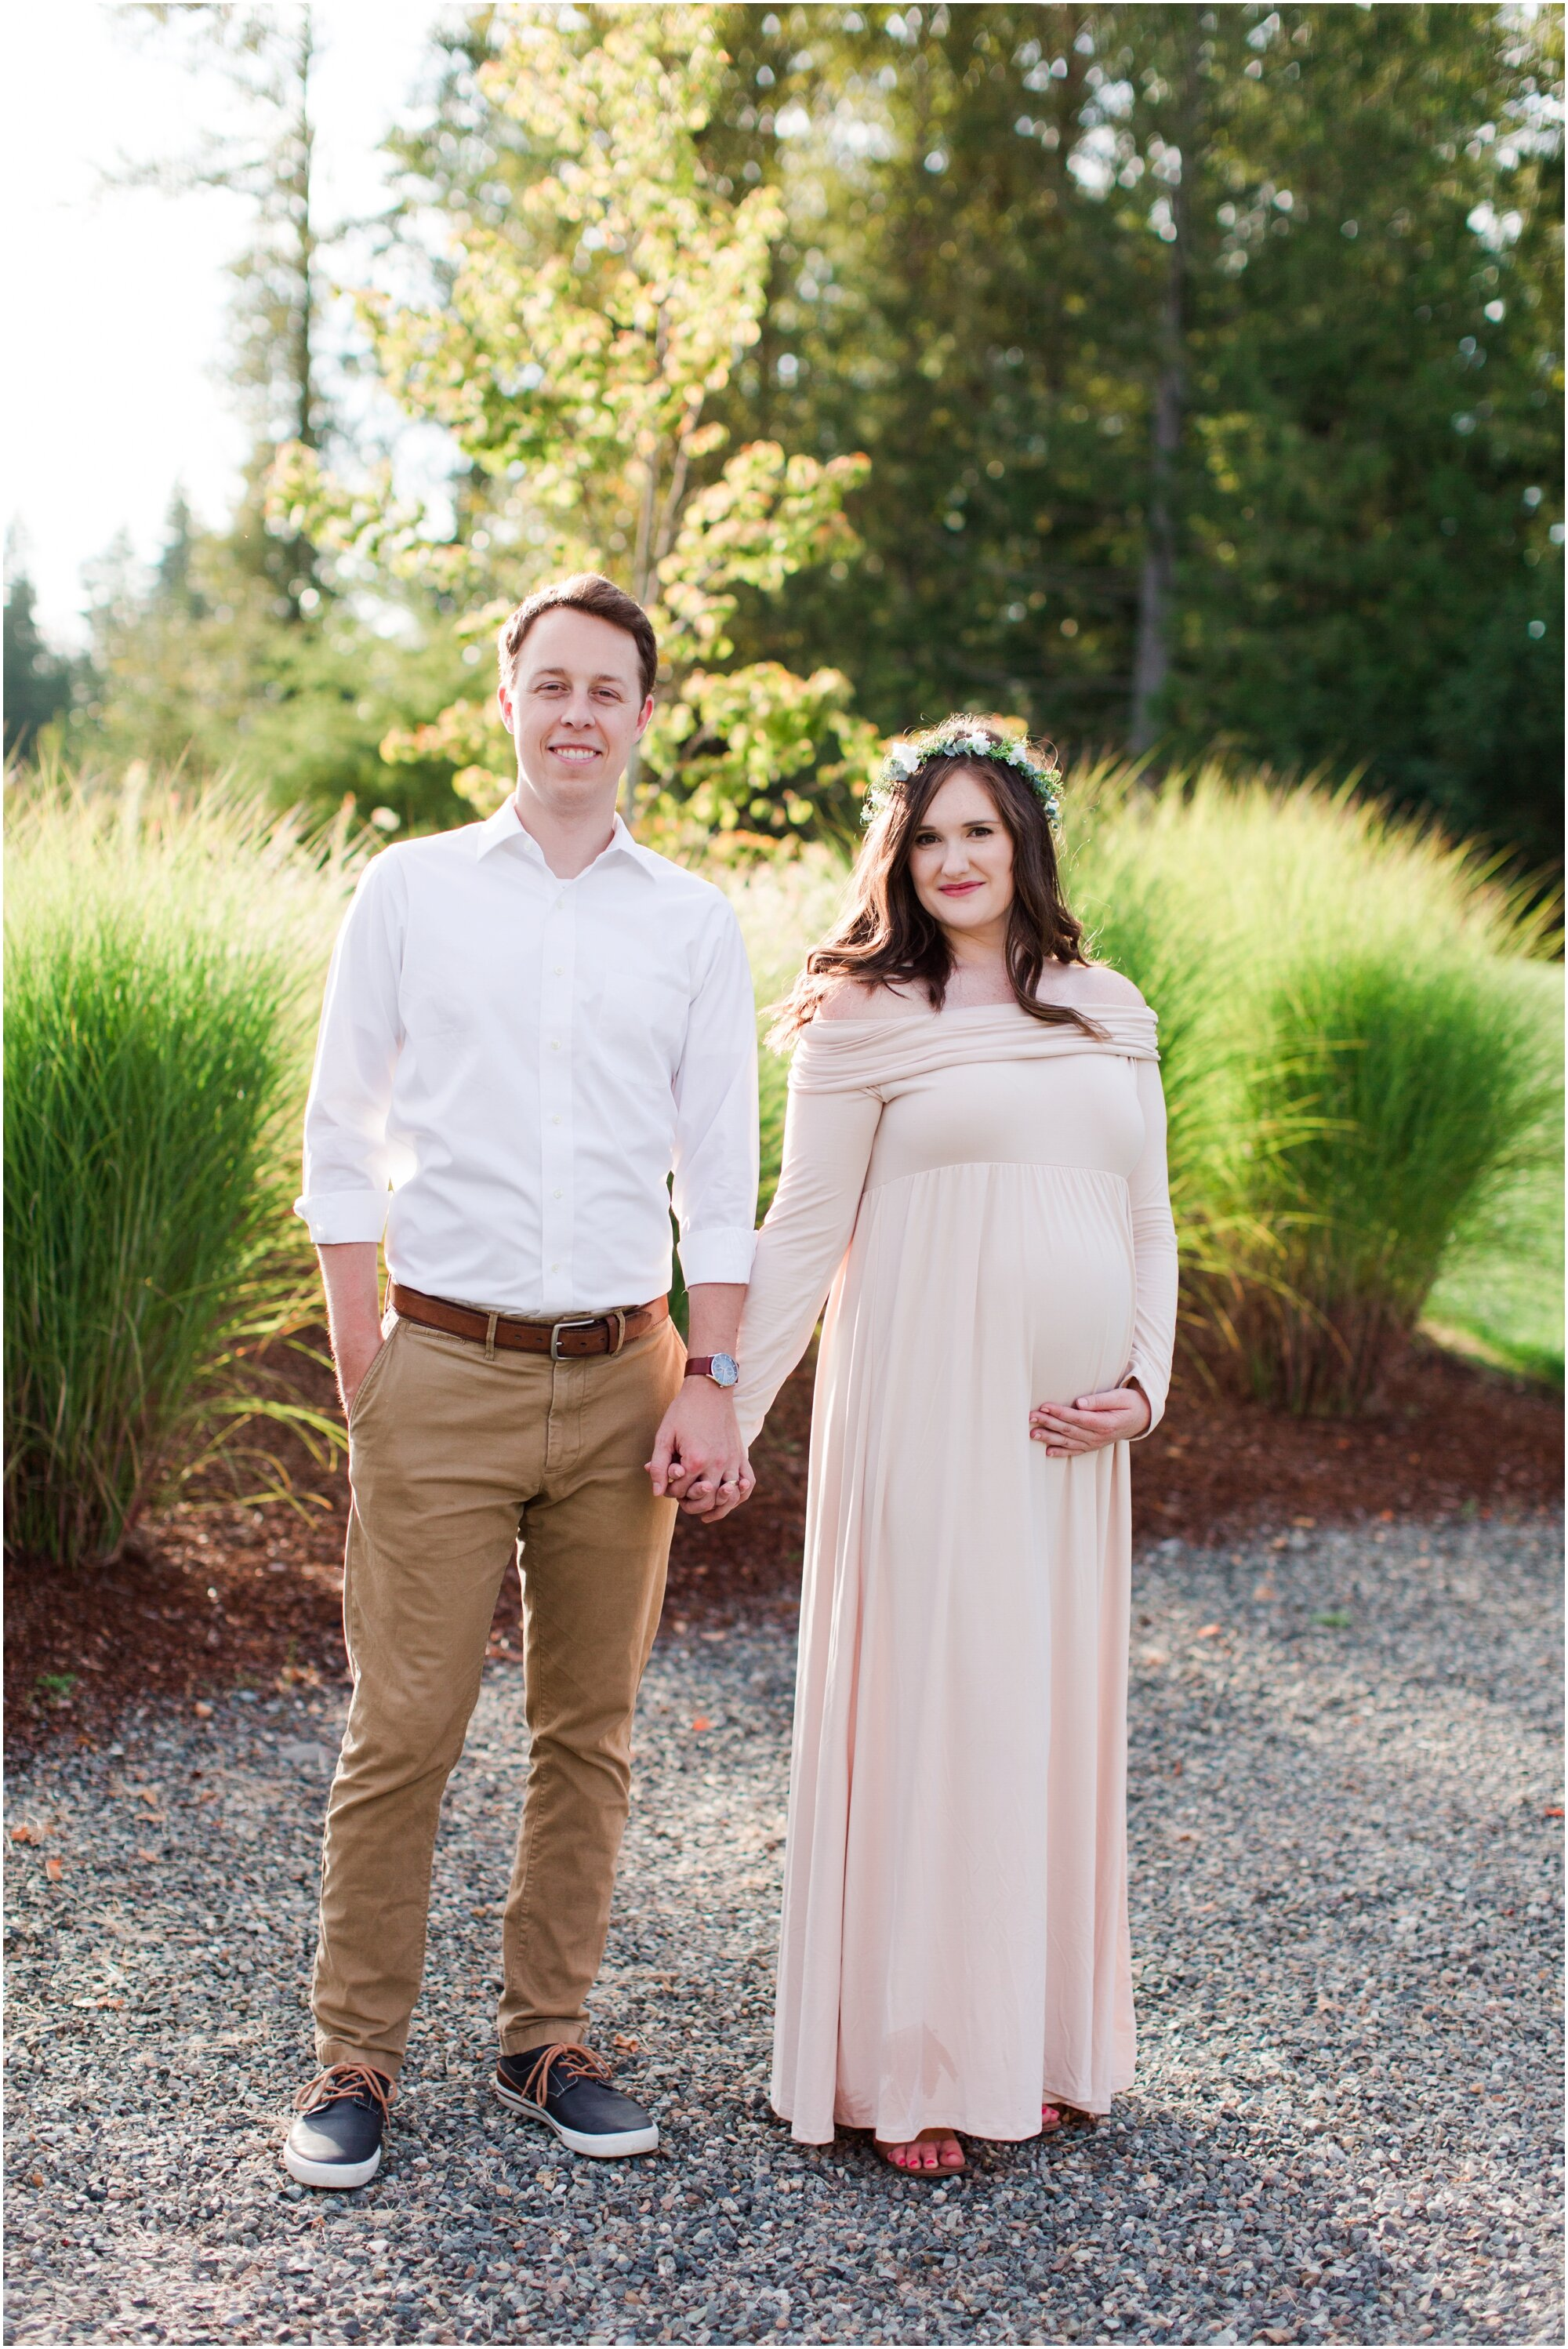 Maternity photos in Tehaleh Bonney Lake, WA. Photos by Briana Calderon Photography based in the greater Seattle-Tacoma Area._1404.jpg